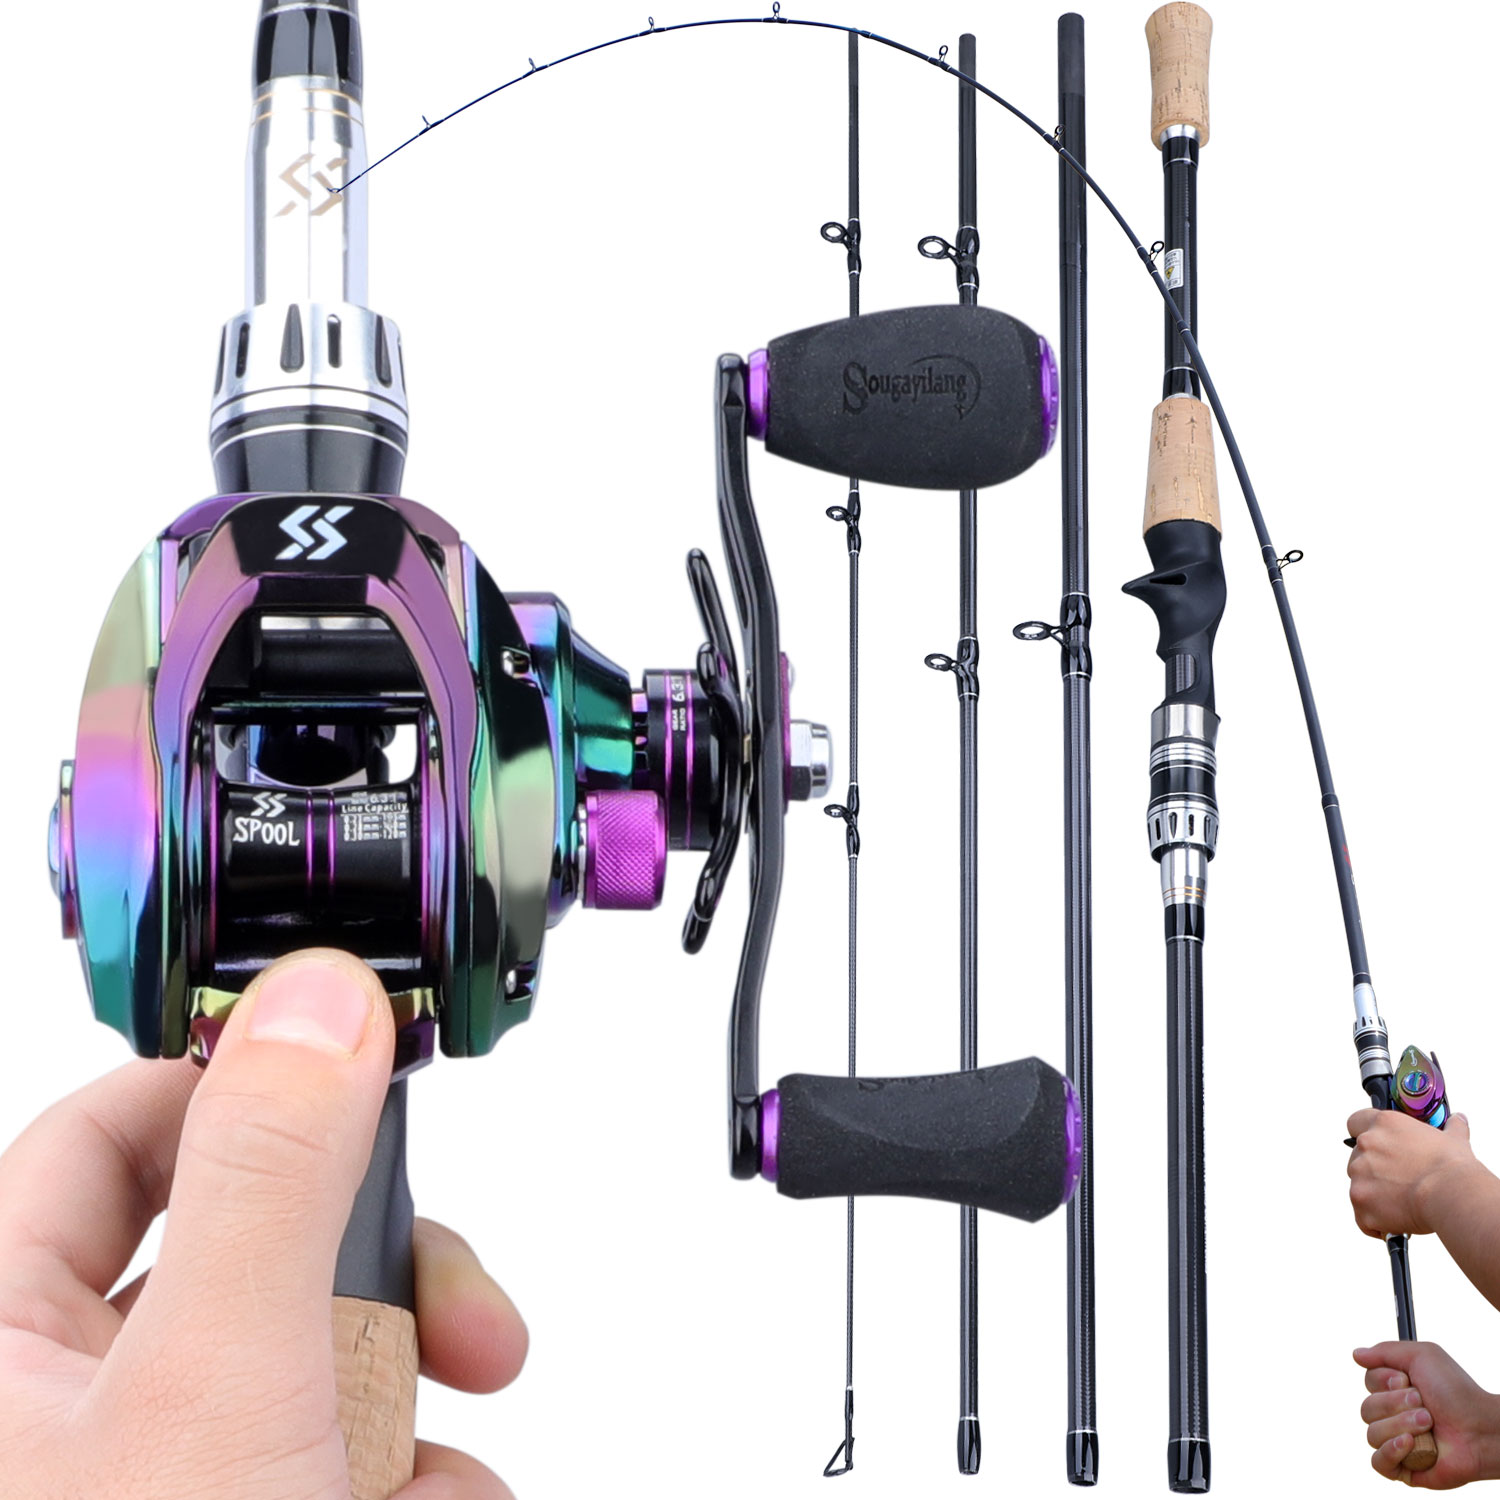 Sougayilang Portable 4 Section Fishing Combo 1.8m 2.1m Lure Fishing Rod And 9+1BB 6.3:1 High Speed Gear Ratio Baitcasting Reels